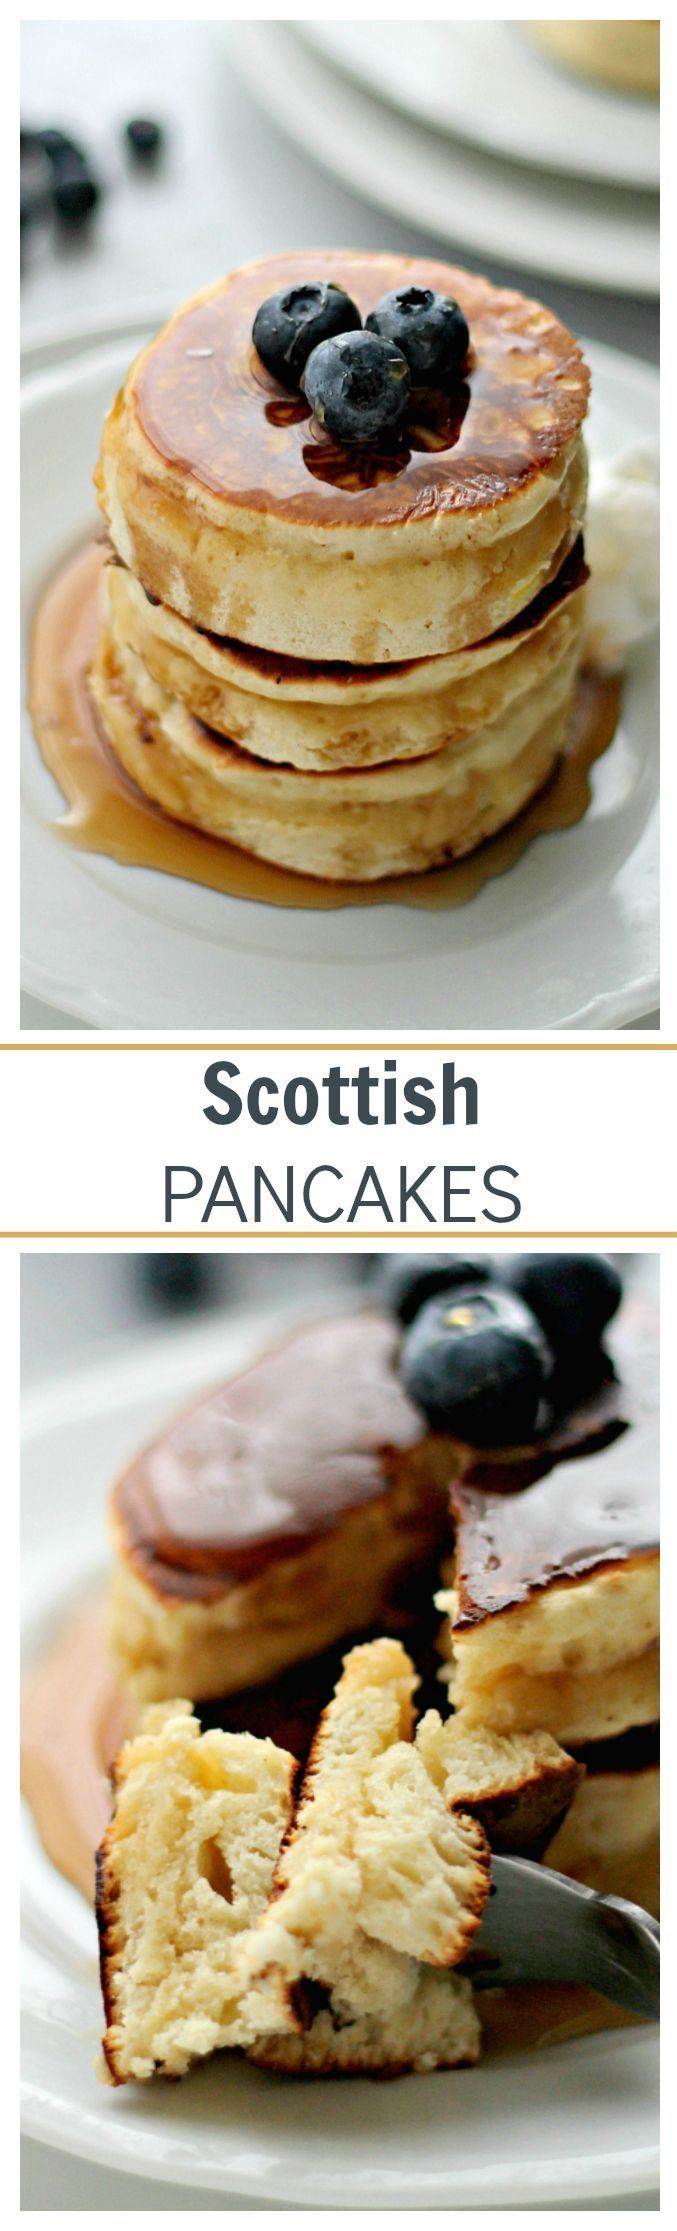 Scottish Pancakes Serves: Serves 4 Ingredients 200g (1-1/2 cups plus one tablespoon plus two teaspoons) all-purpose flour 1 tablespoon baking powder pinch of salt 1 tablespoon sugar 1 teaspoon ground cinnamon 1 large egg 300 ml (1-1/4 cups) milk butter for pan honey or maple syrup fresh berries Instructions In a mixing bowl, combine flour, baking powder, salt, sugar and cinnamon; whisk to combine. Combine eggs and milk into your mixer's bowl and beat on medium high until eggs are foamy…